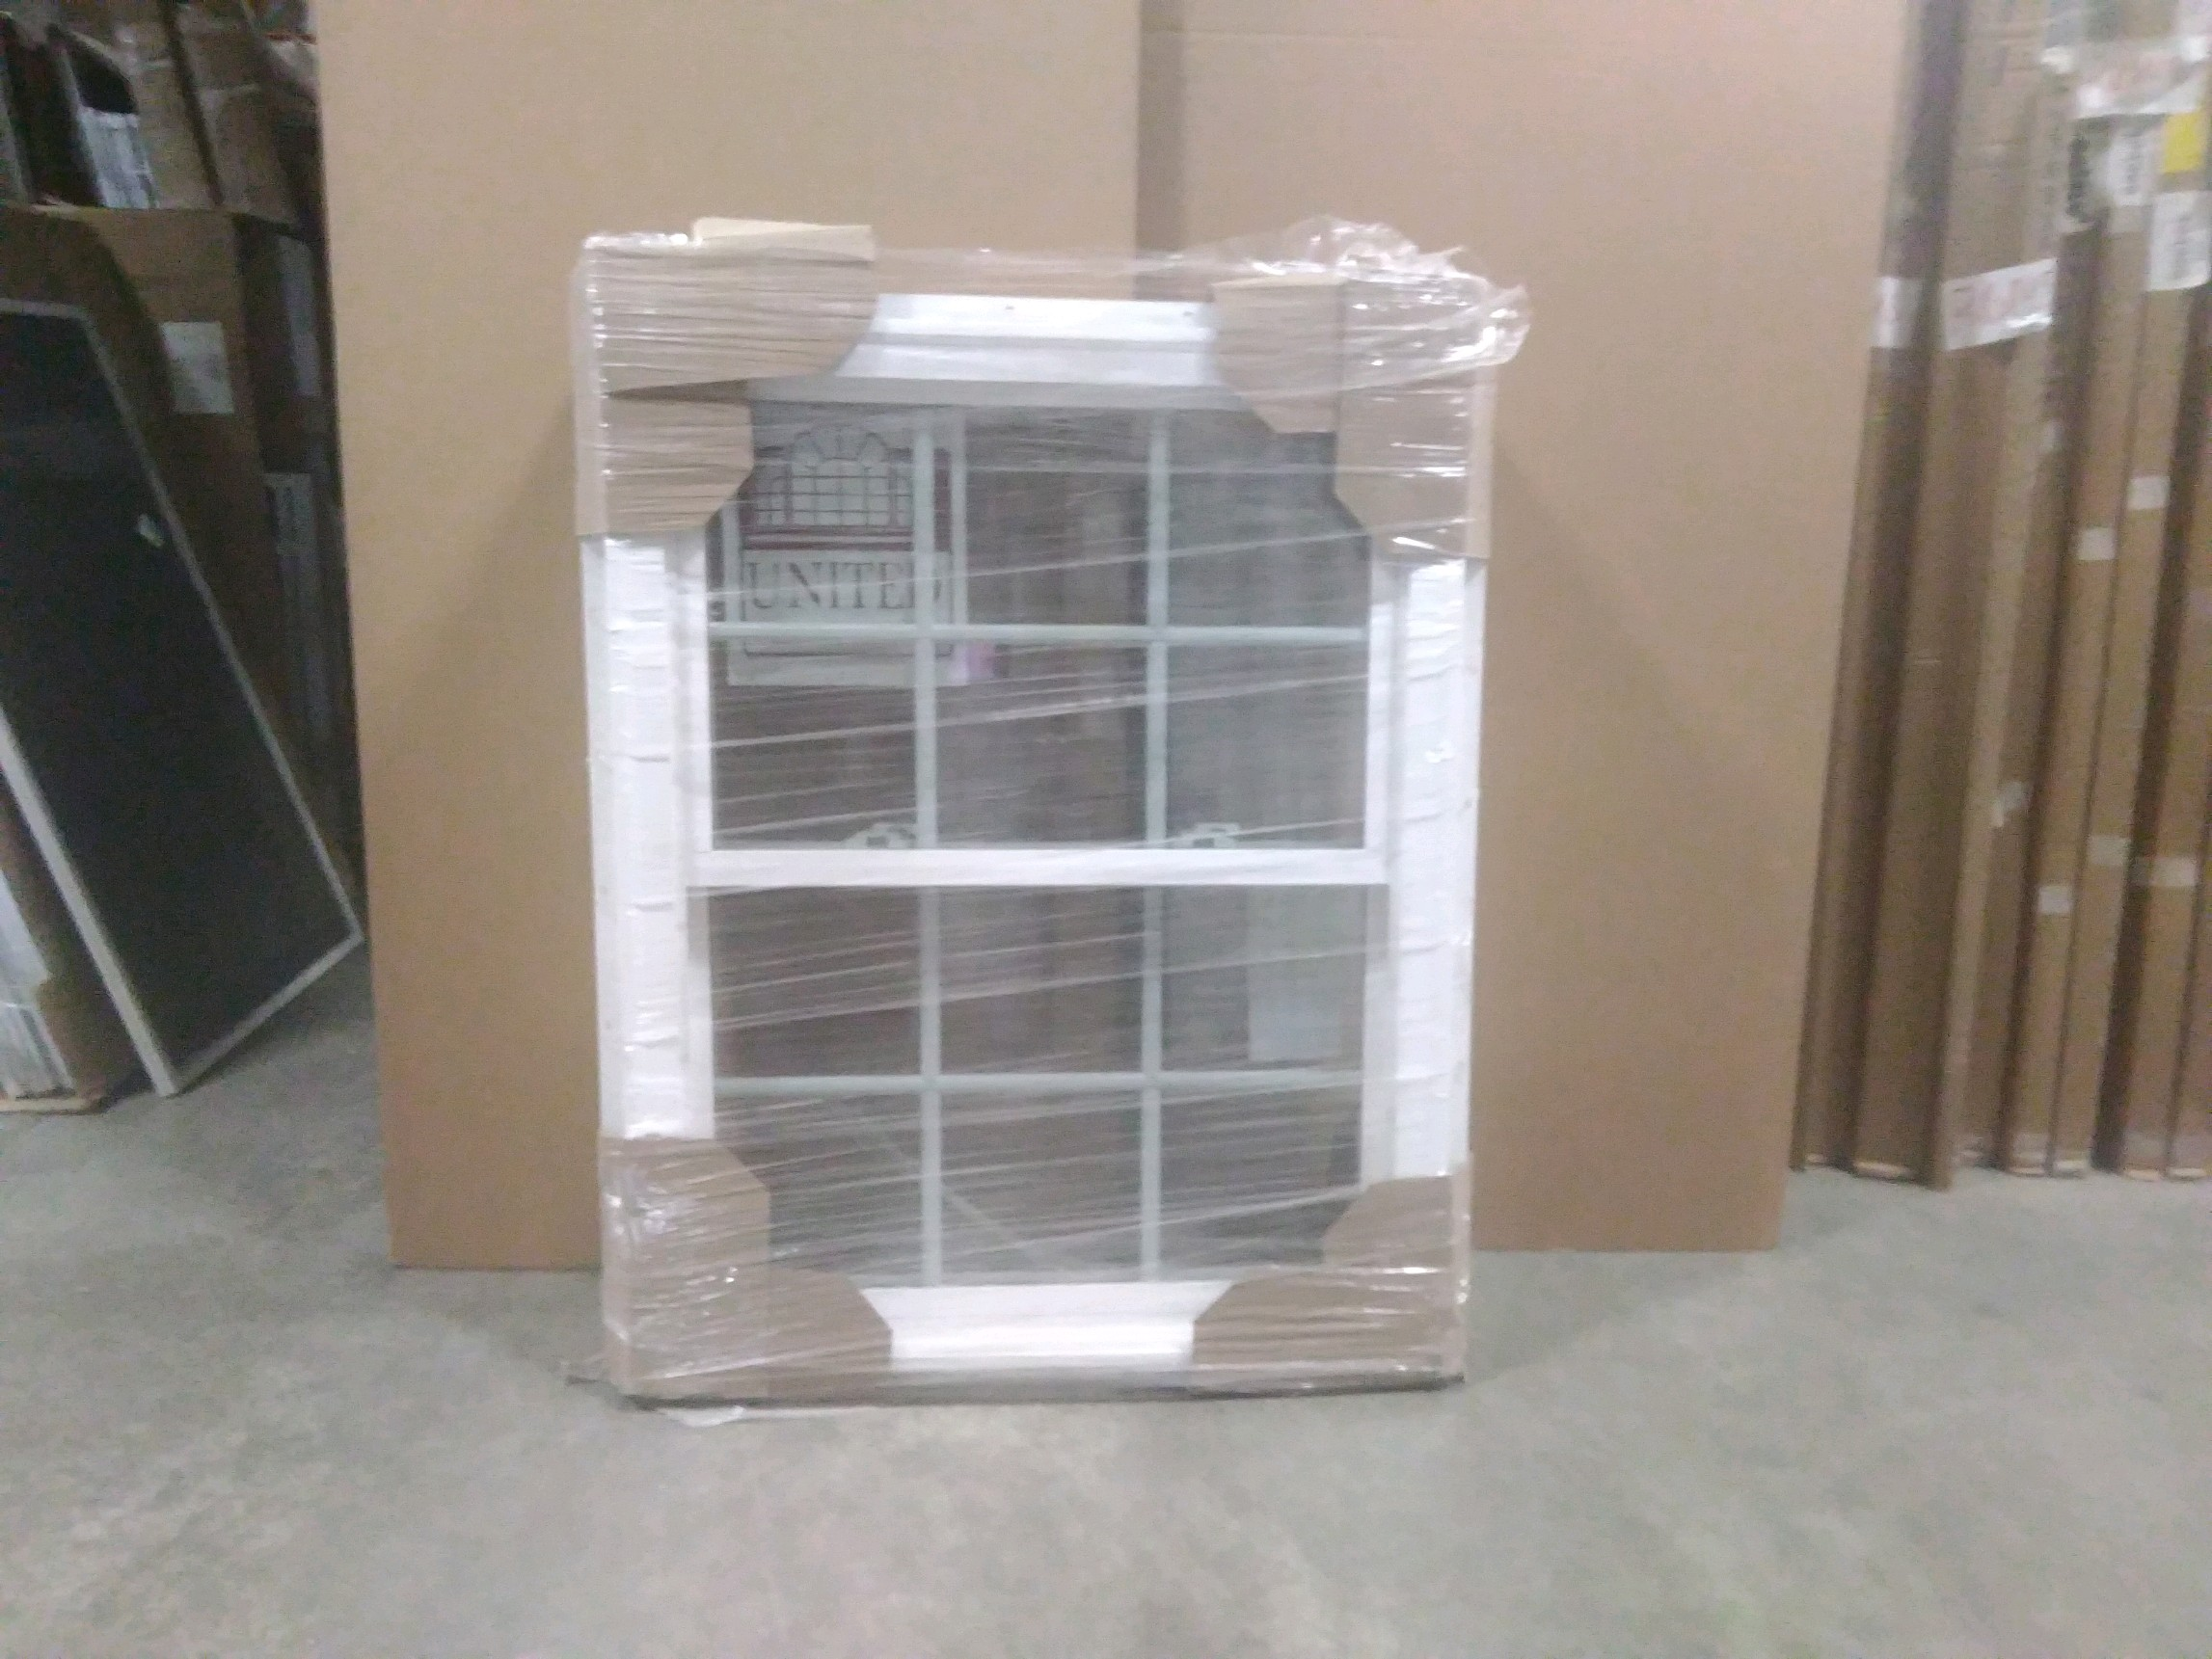 United 31 1/2 x 39 1/2 Vinyl Window  6 9/16